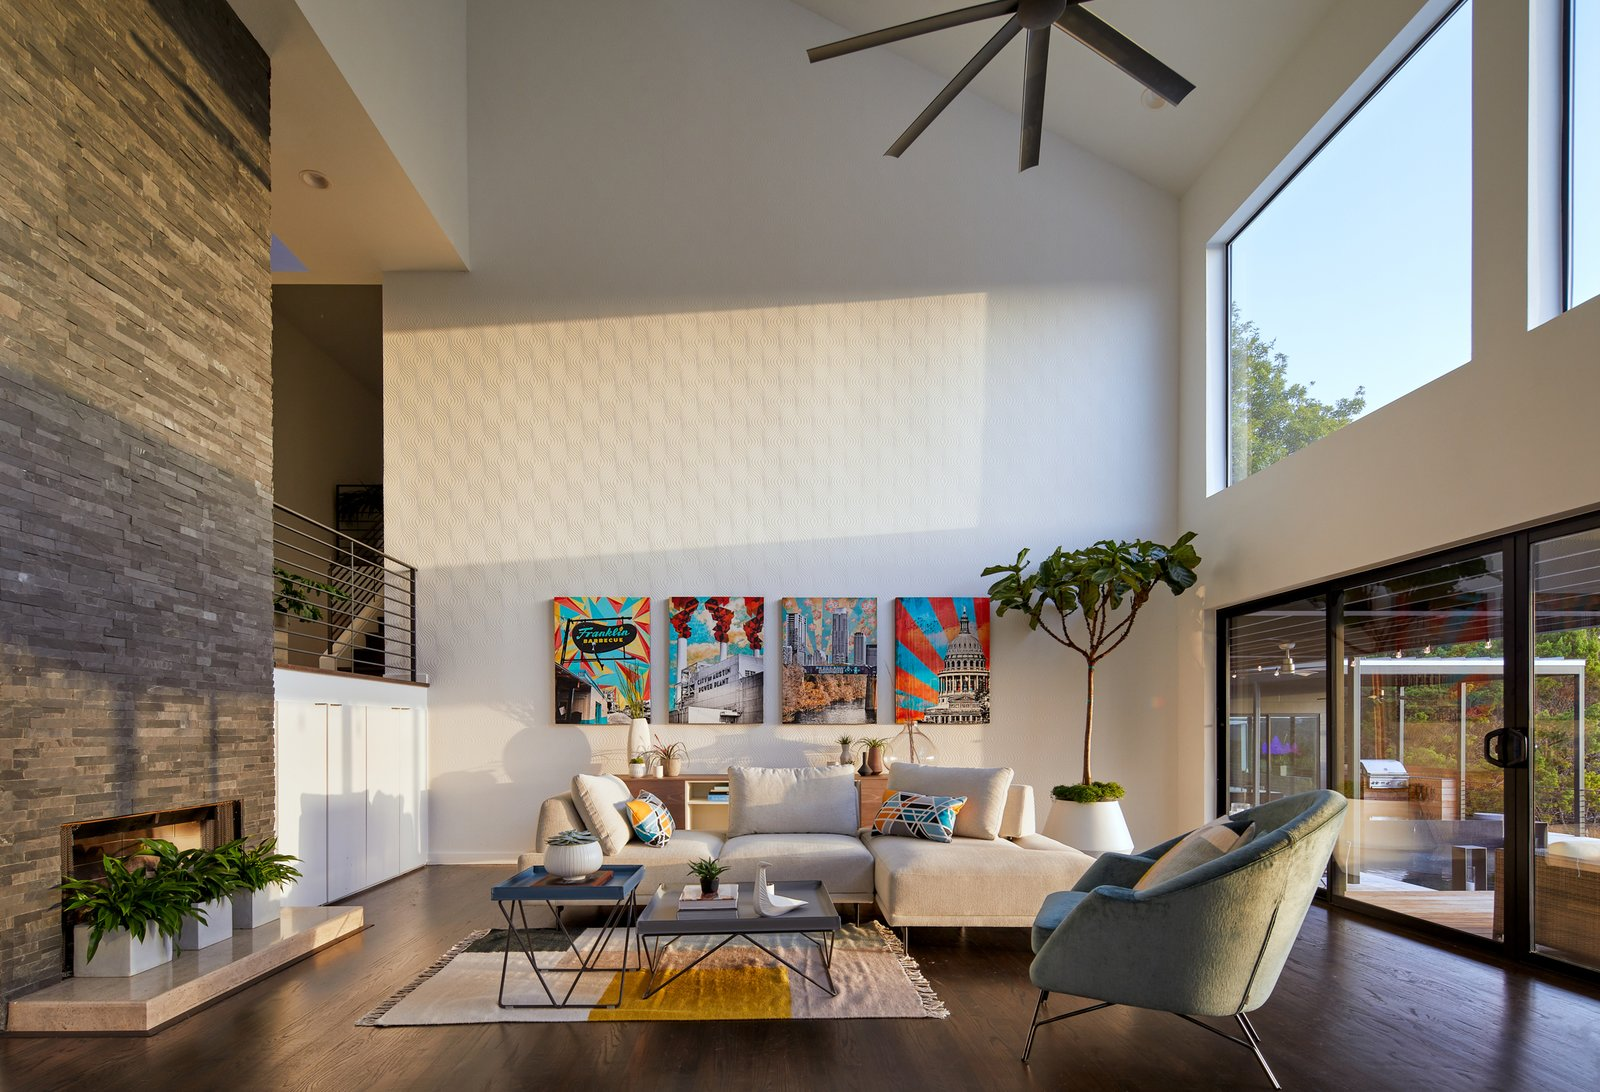 Living Room, Sofa, Sectional, Ceiling Lighting, Recessed Lighting, Coffee Tables, Console Tables, Dark Hardwood Floor, and Standard Layout Fireplace Via Media Residence by Matt Fajkus Architecture | Photo by Leonid Furmansky  Via Media Residence by Matt Fajkus Architecture